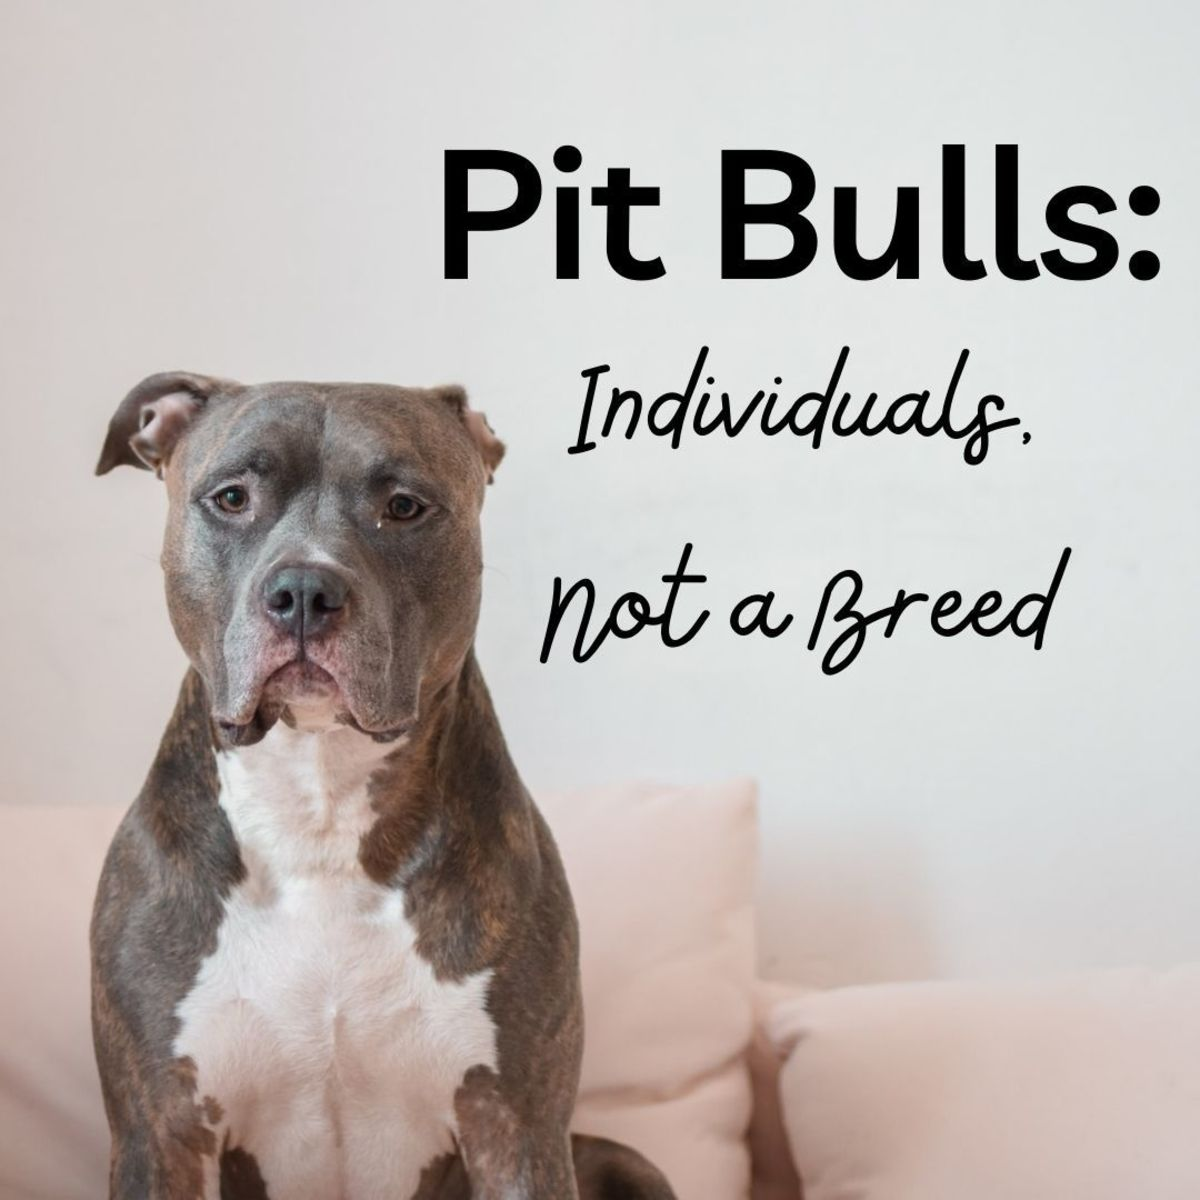 Pit bulls account for the largest percentage of dogs that find themselves in shelters around the country because of owner surrenders, strays, and overbreeding.